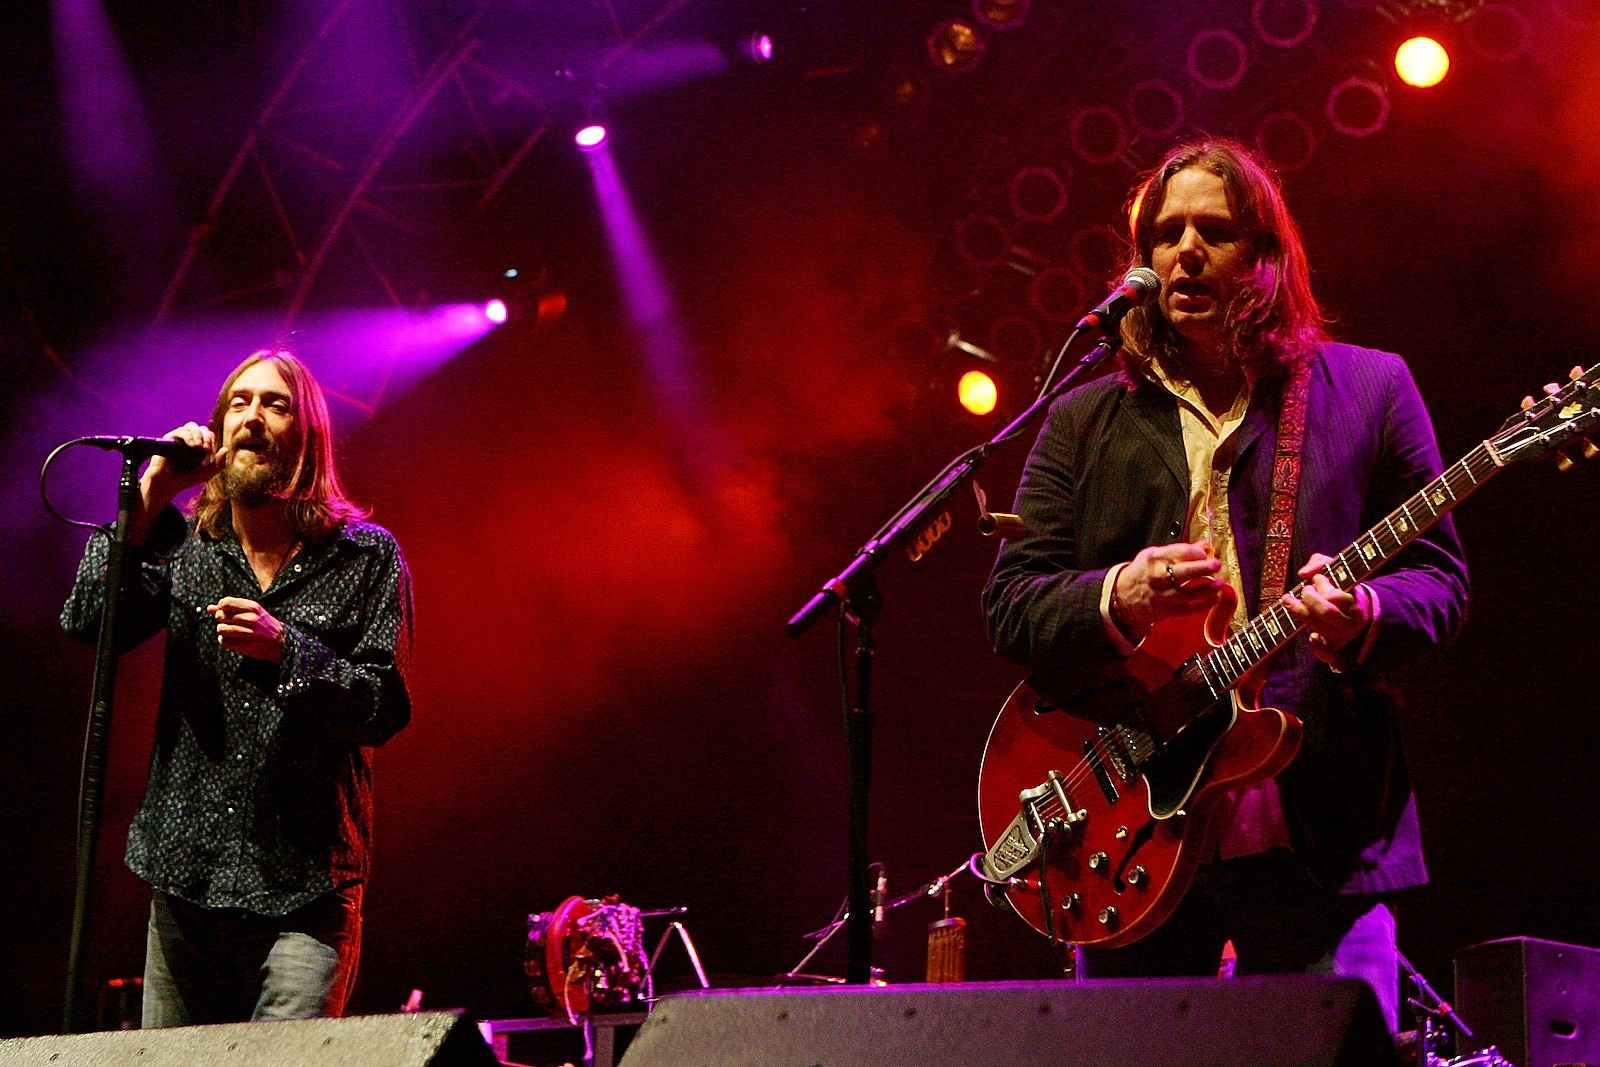 Black Crowes Announce Rescheduled 2021 North American Tour